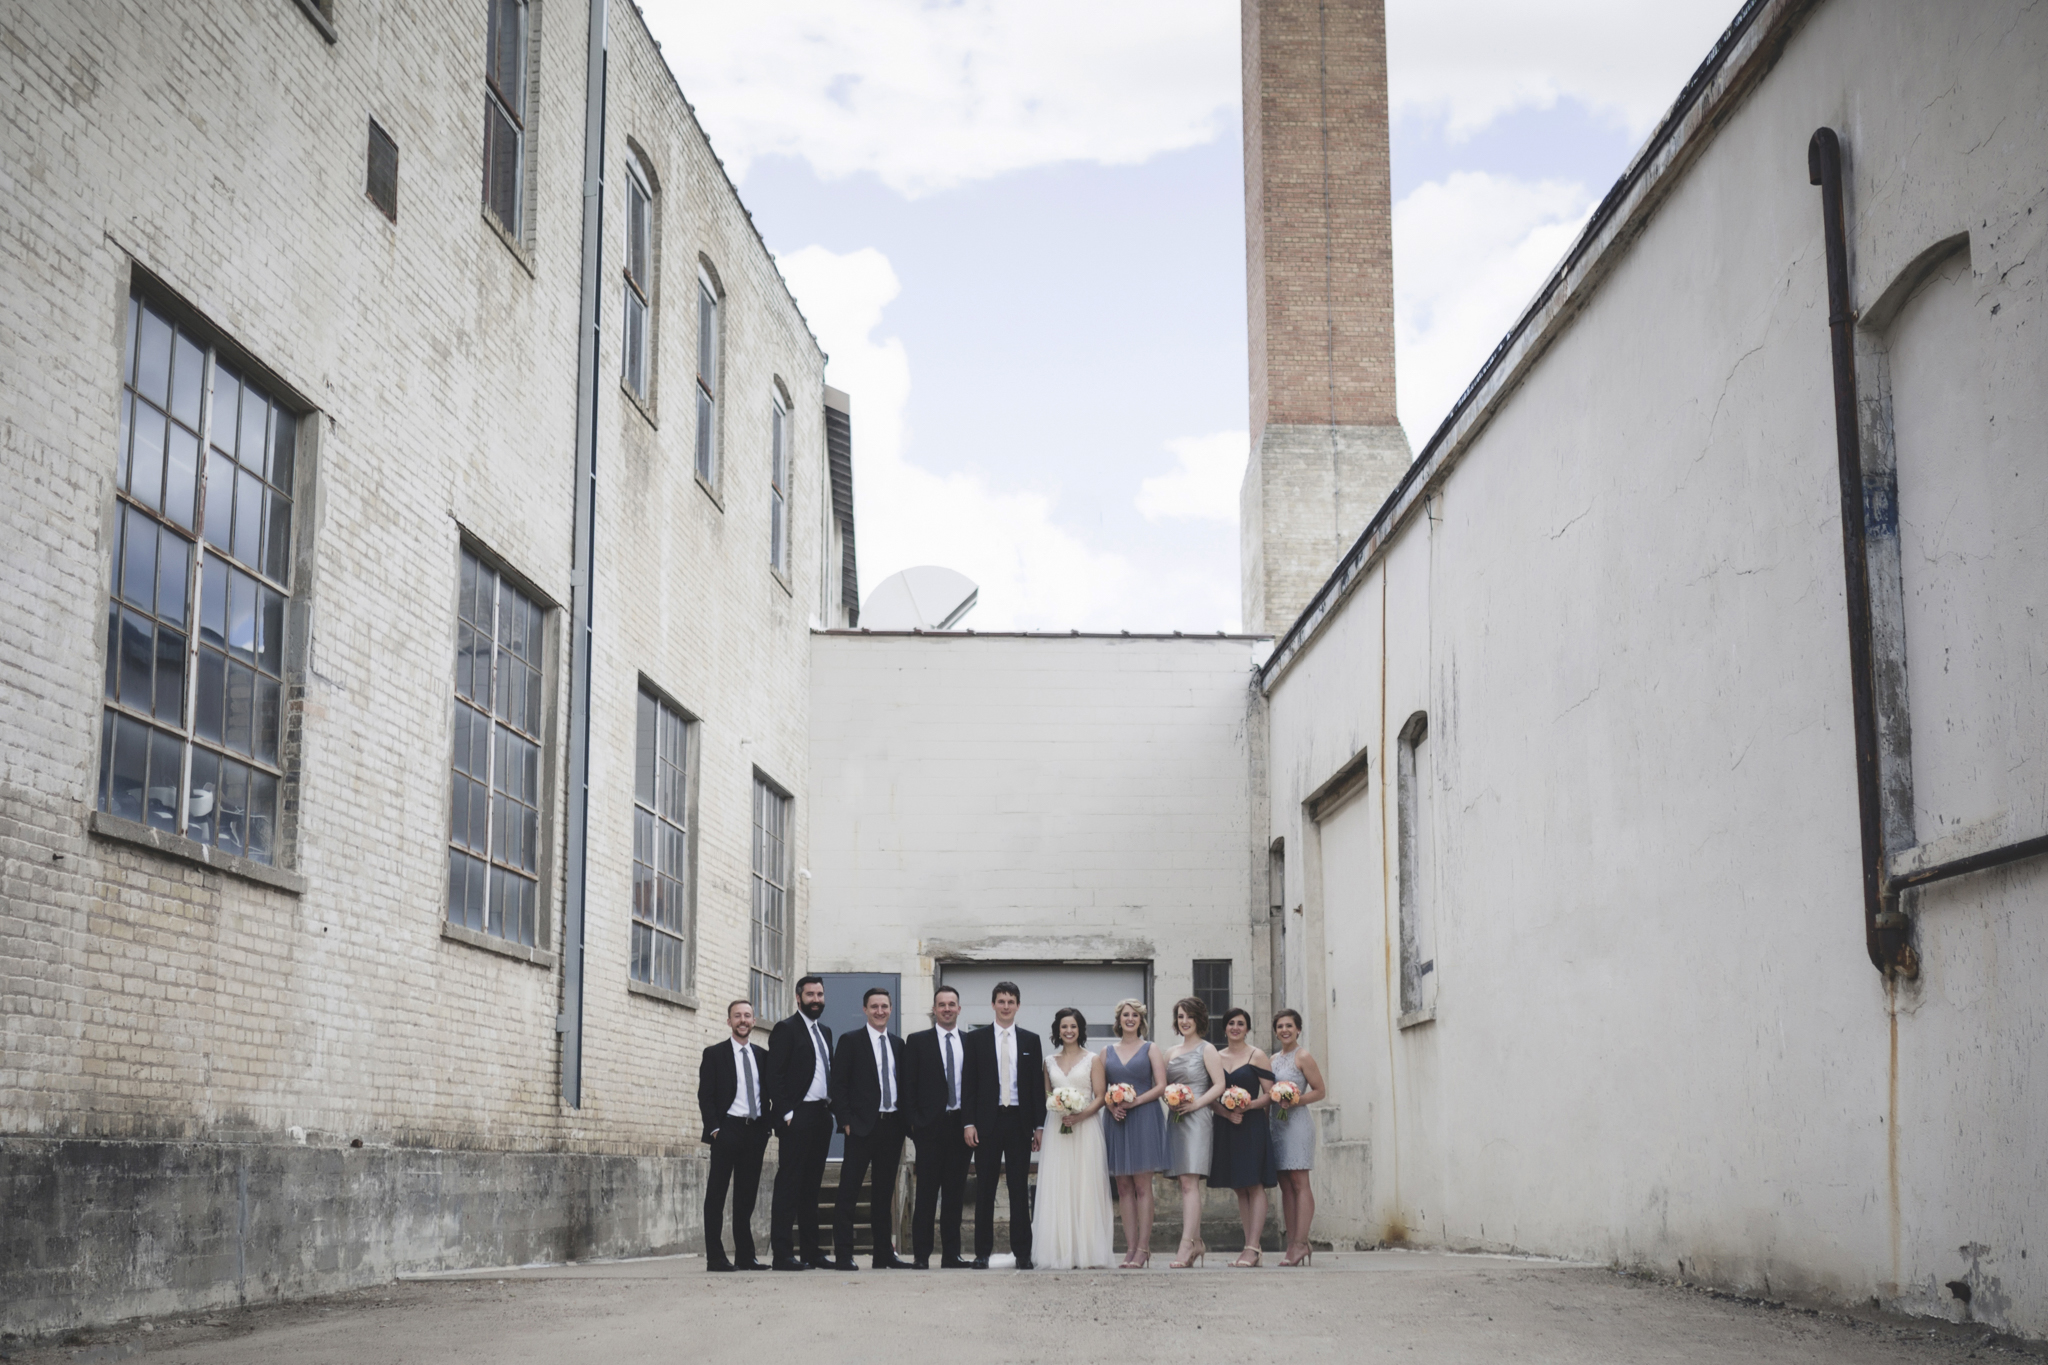 40 bauhaus brewery northeast minneapolis wedding photographer.jpg